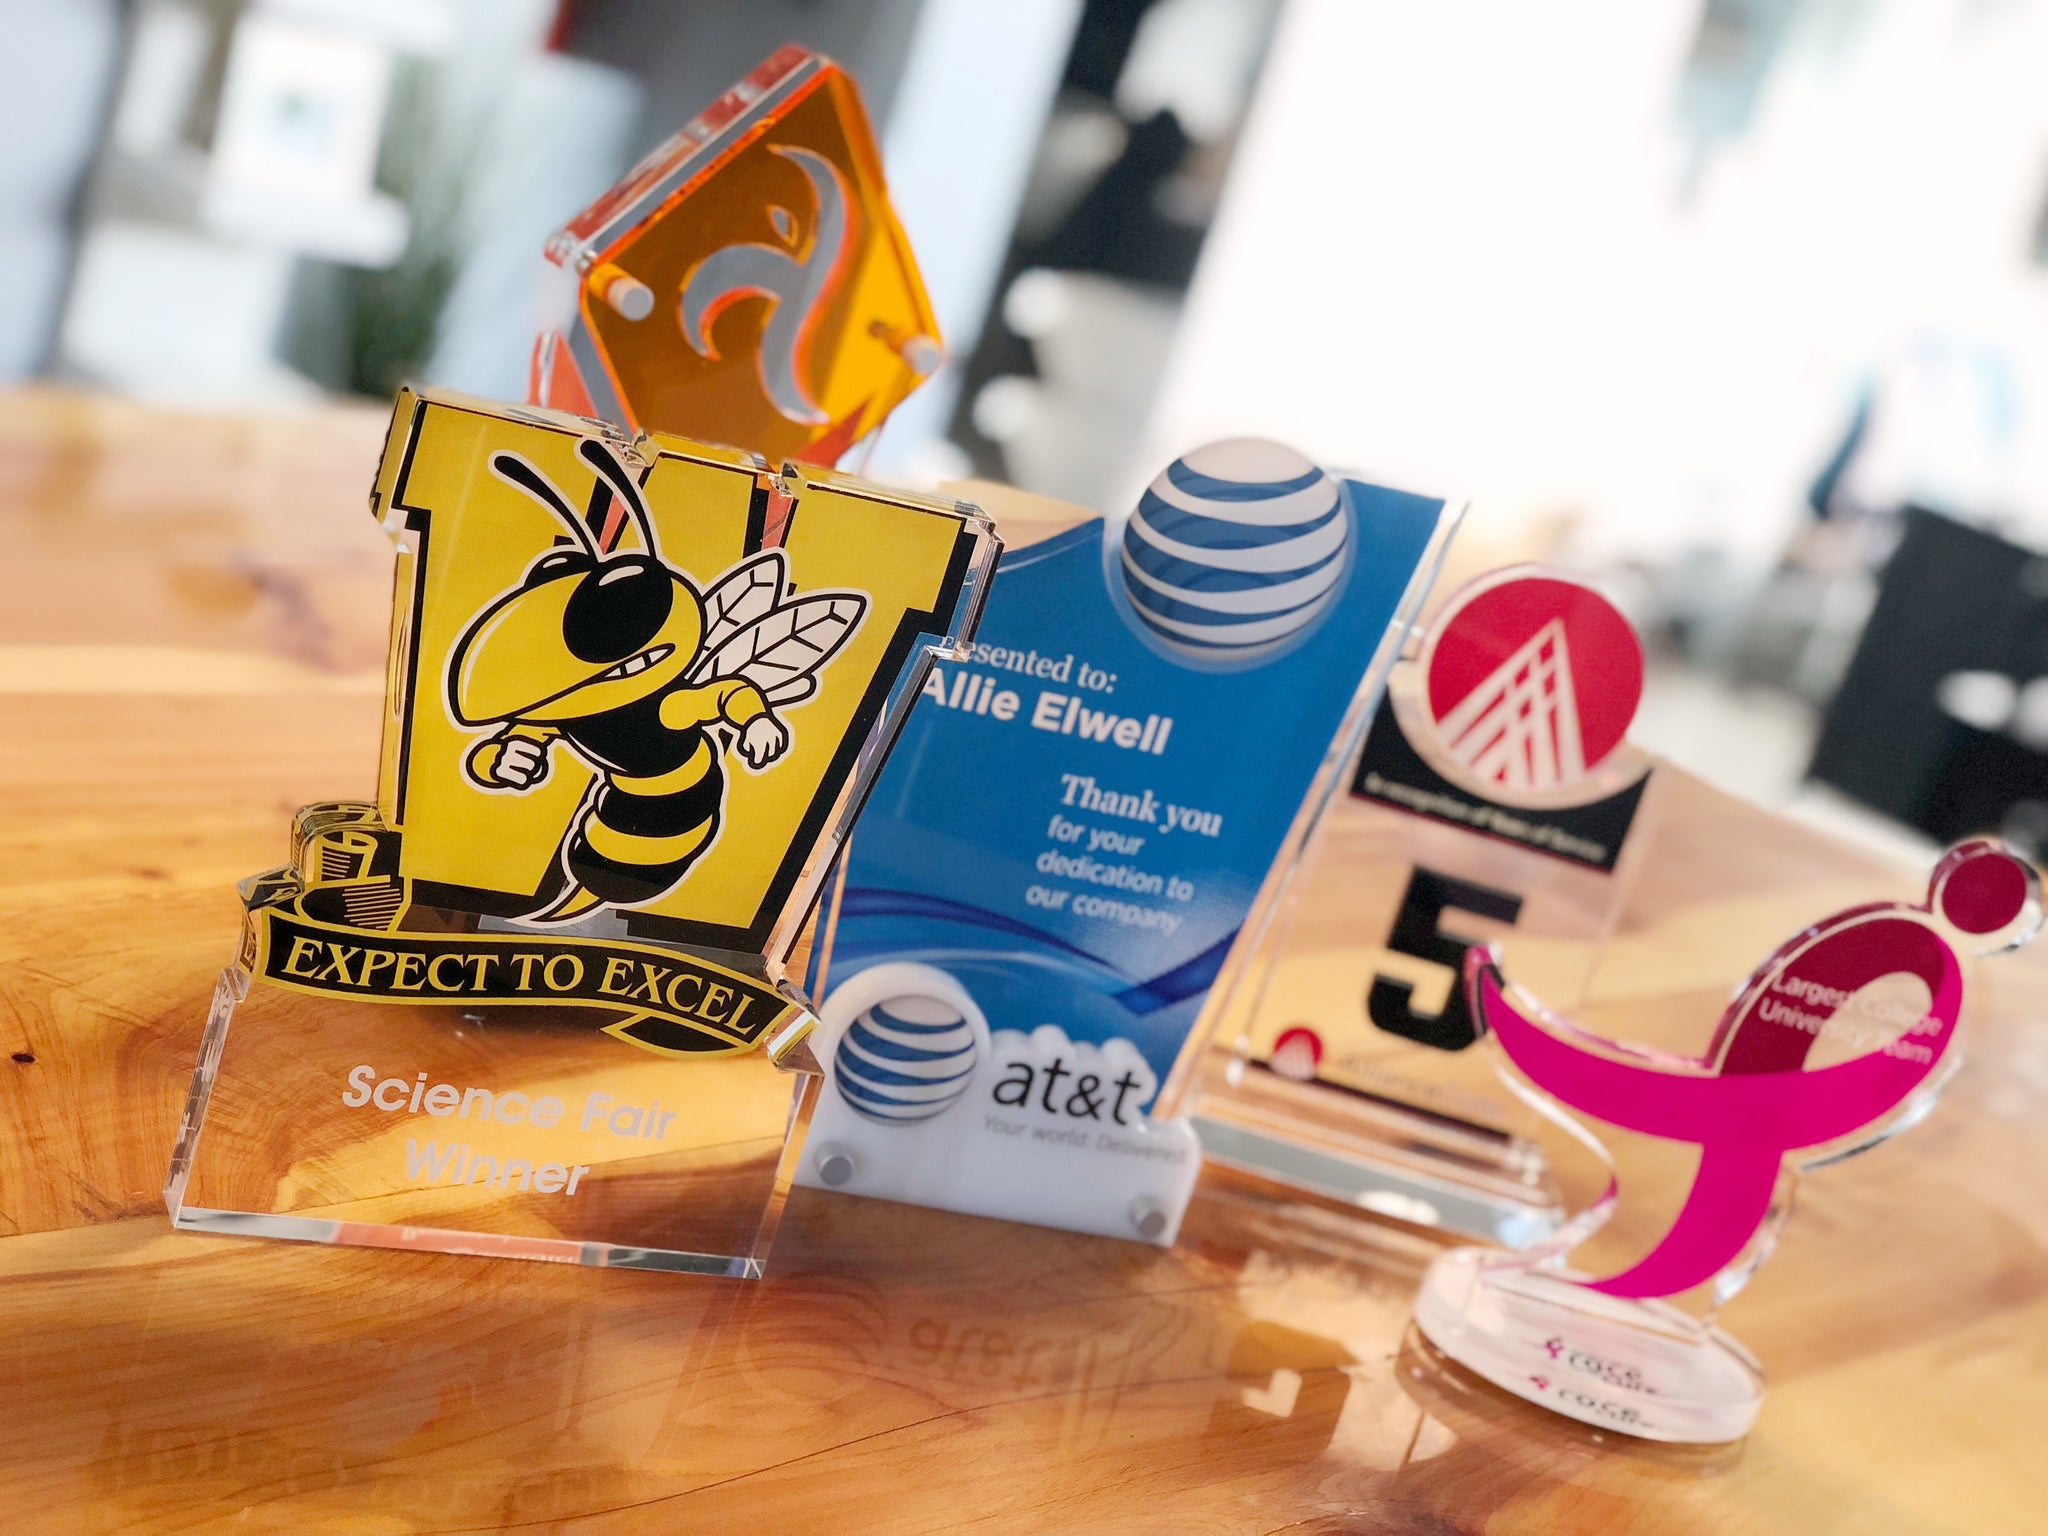 Custom Awards, Plaques + Tropies to Reward Your Team